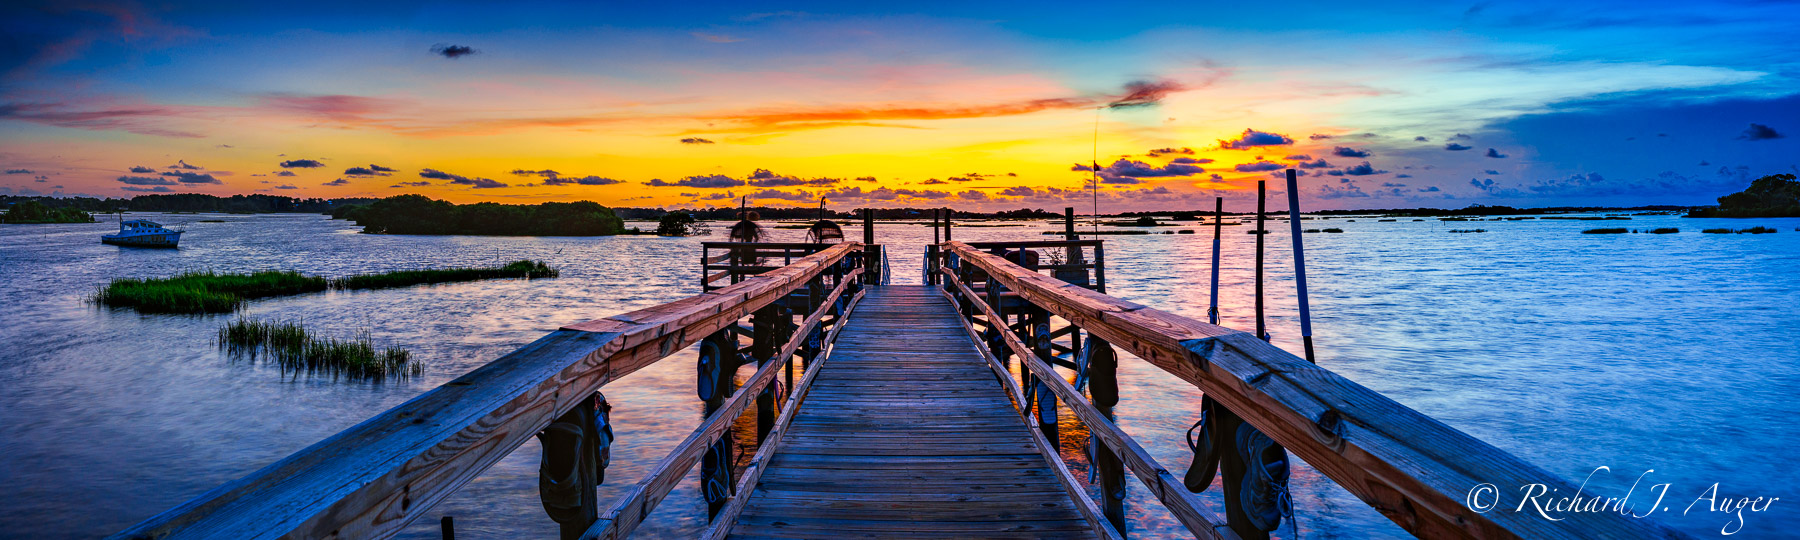 cedar key, Florida, dock, sunset, coastal